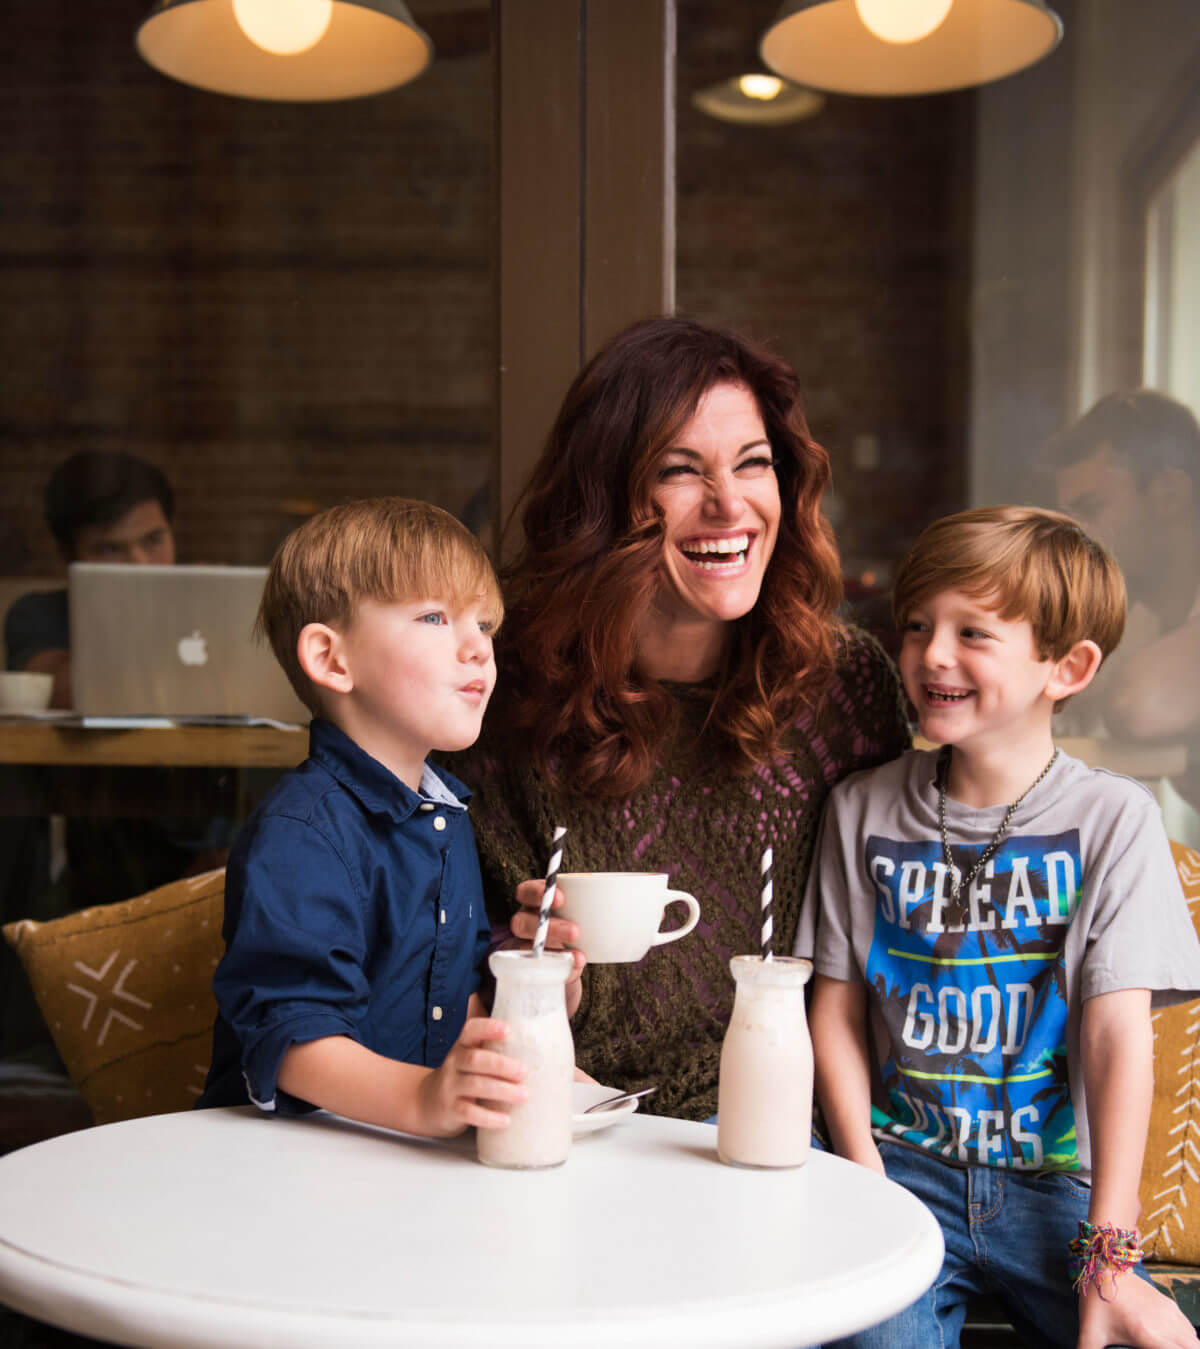 Scout Coffee Mom and Sons